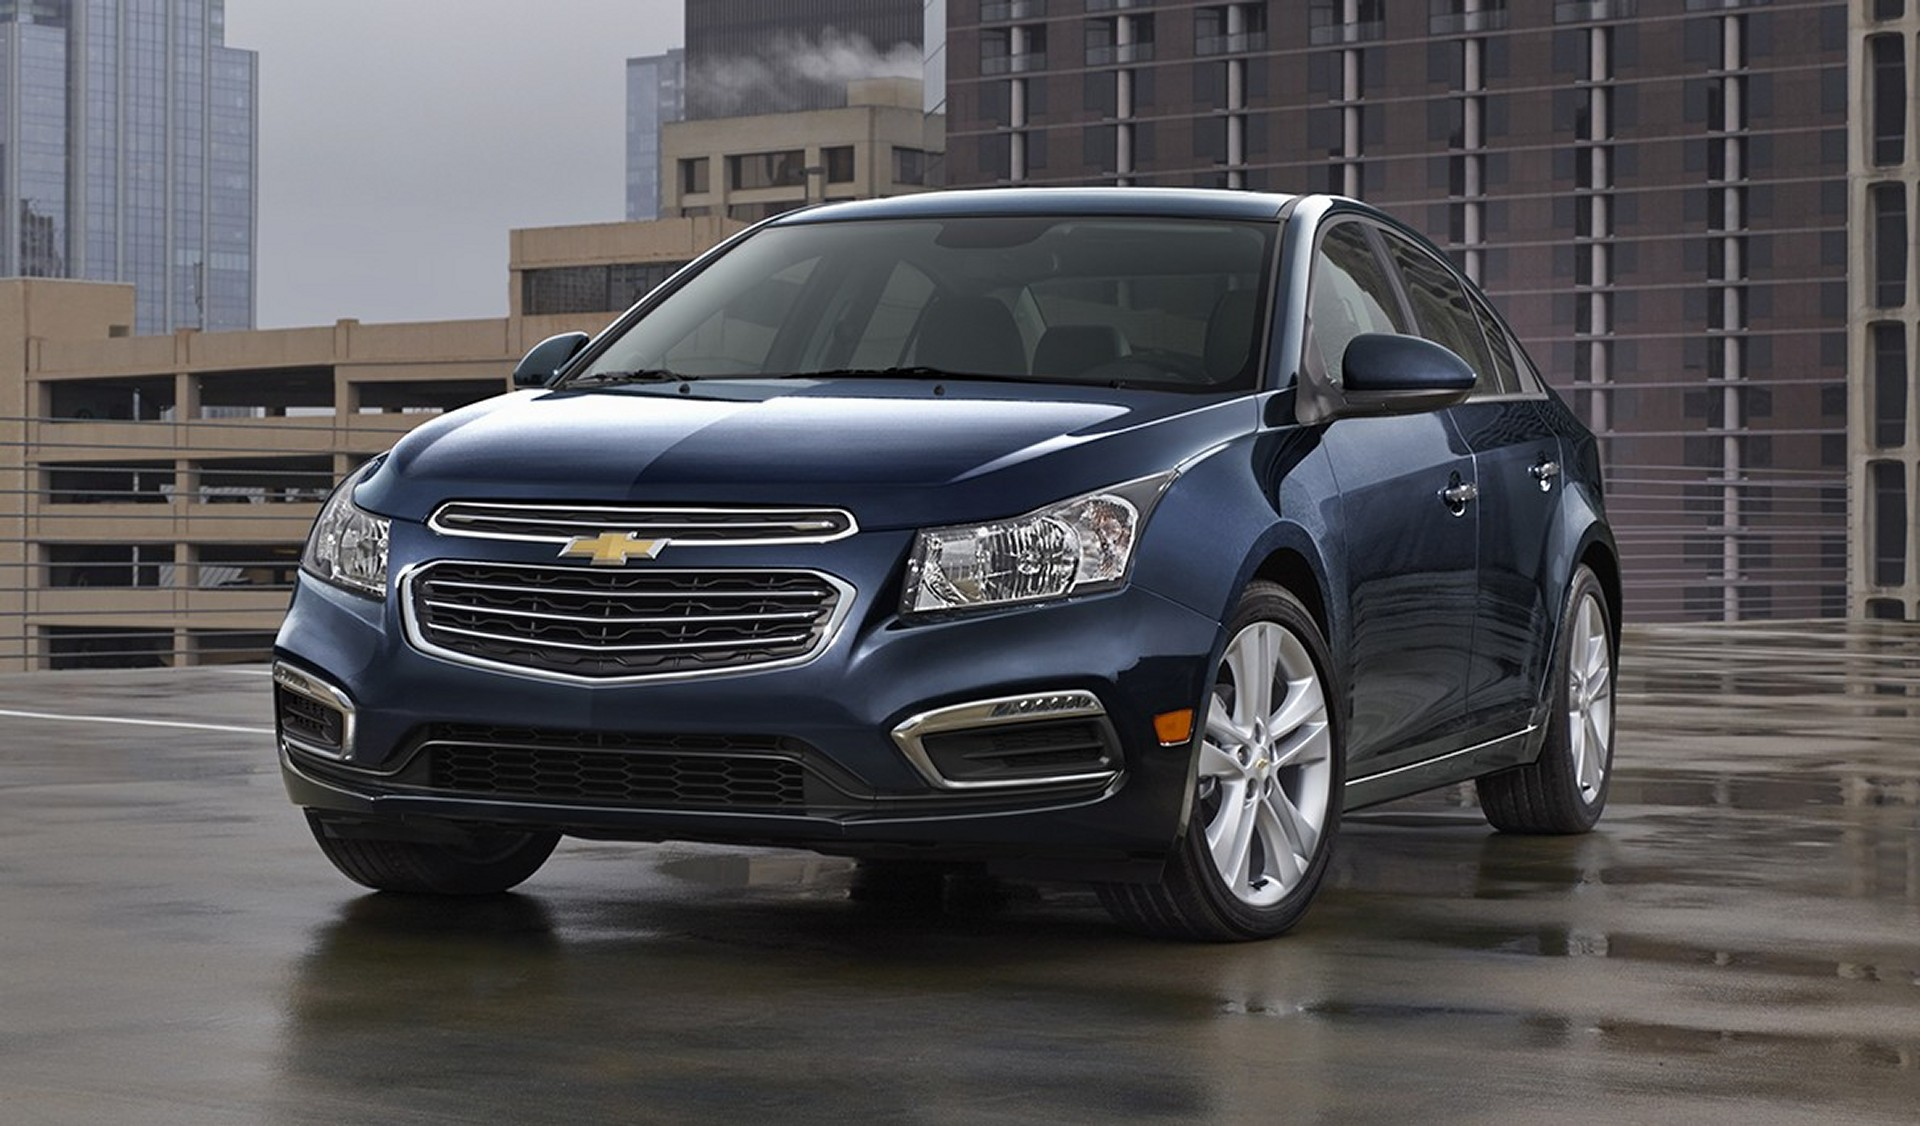 Land Rover Louisville >> 2015 Chevrolet Cruze (Chevy) Review, Ratings, Specs